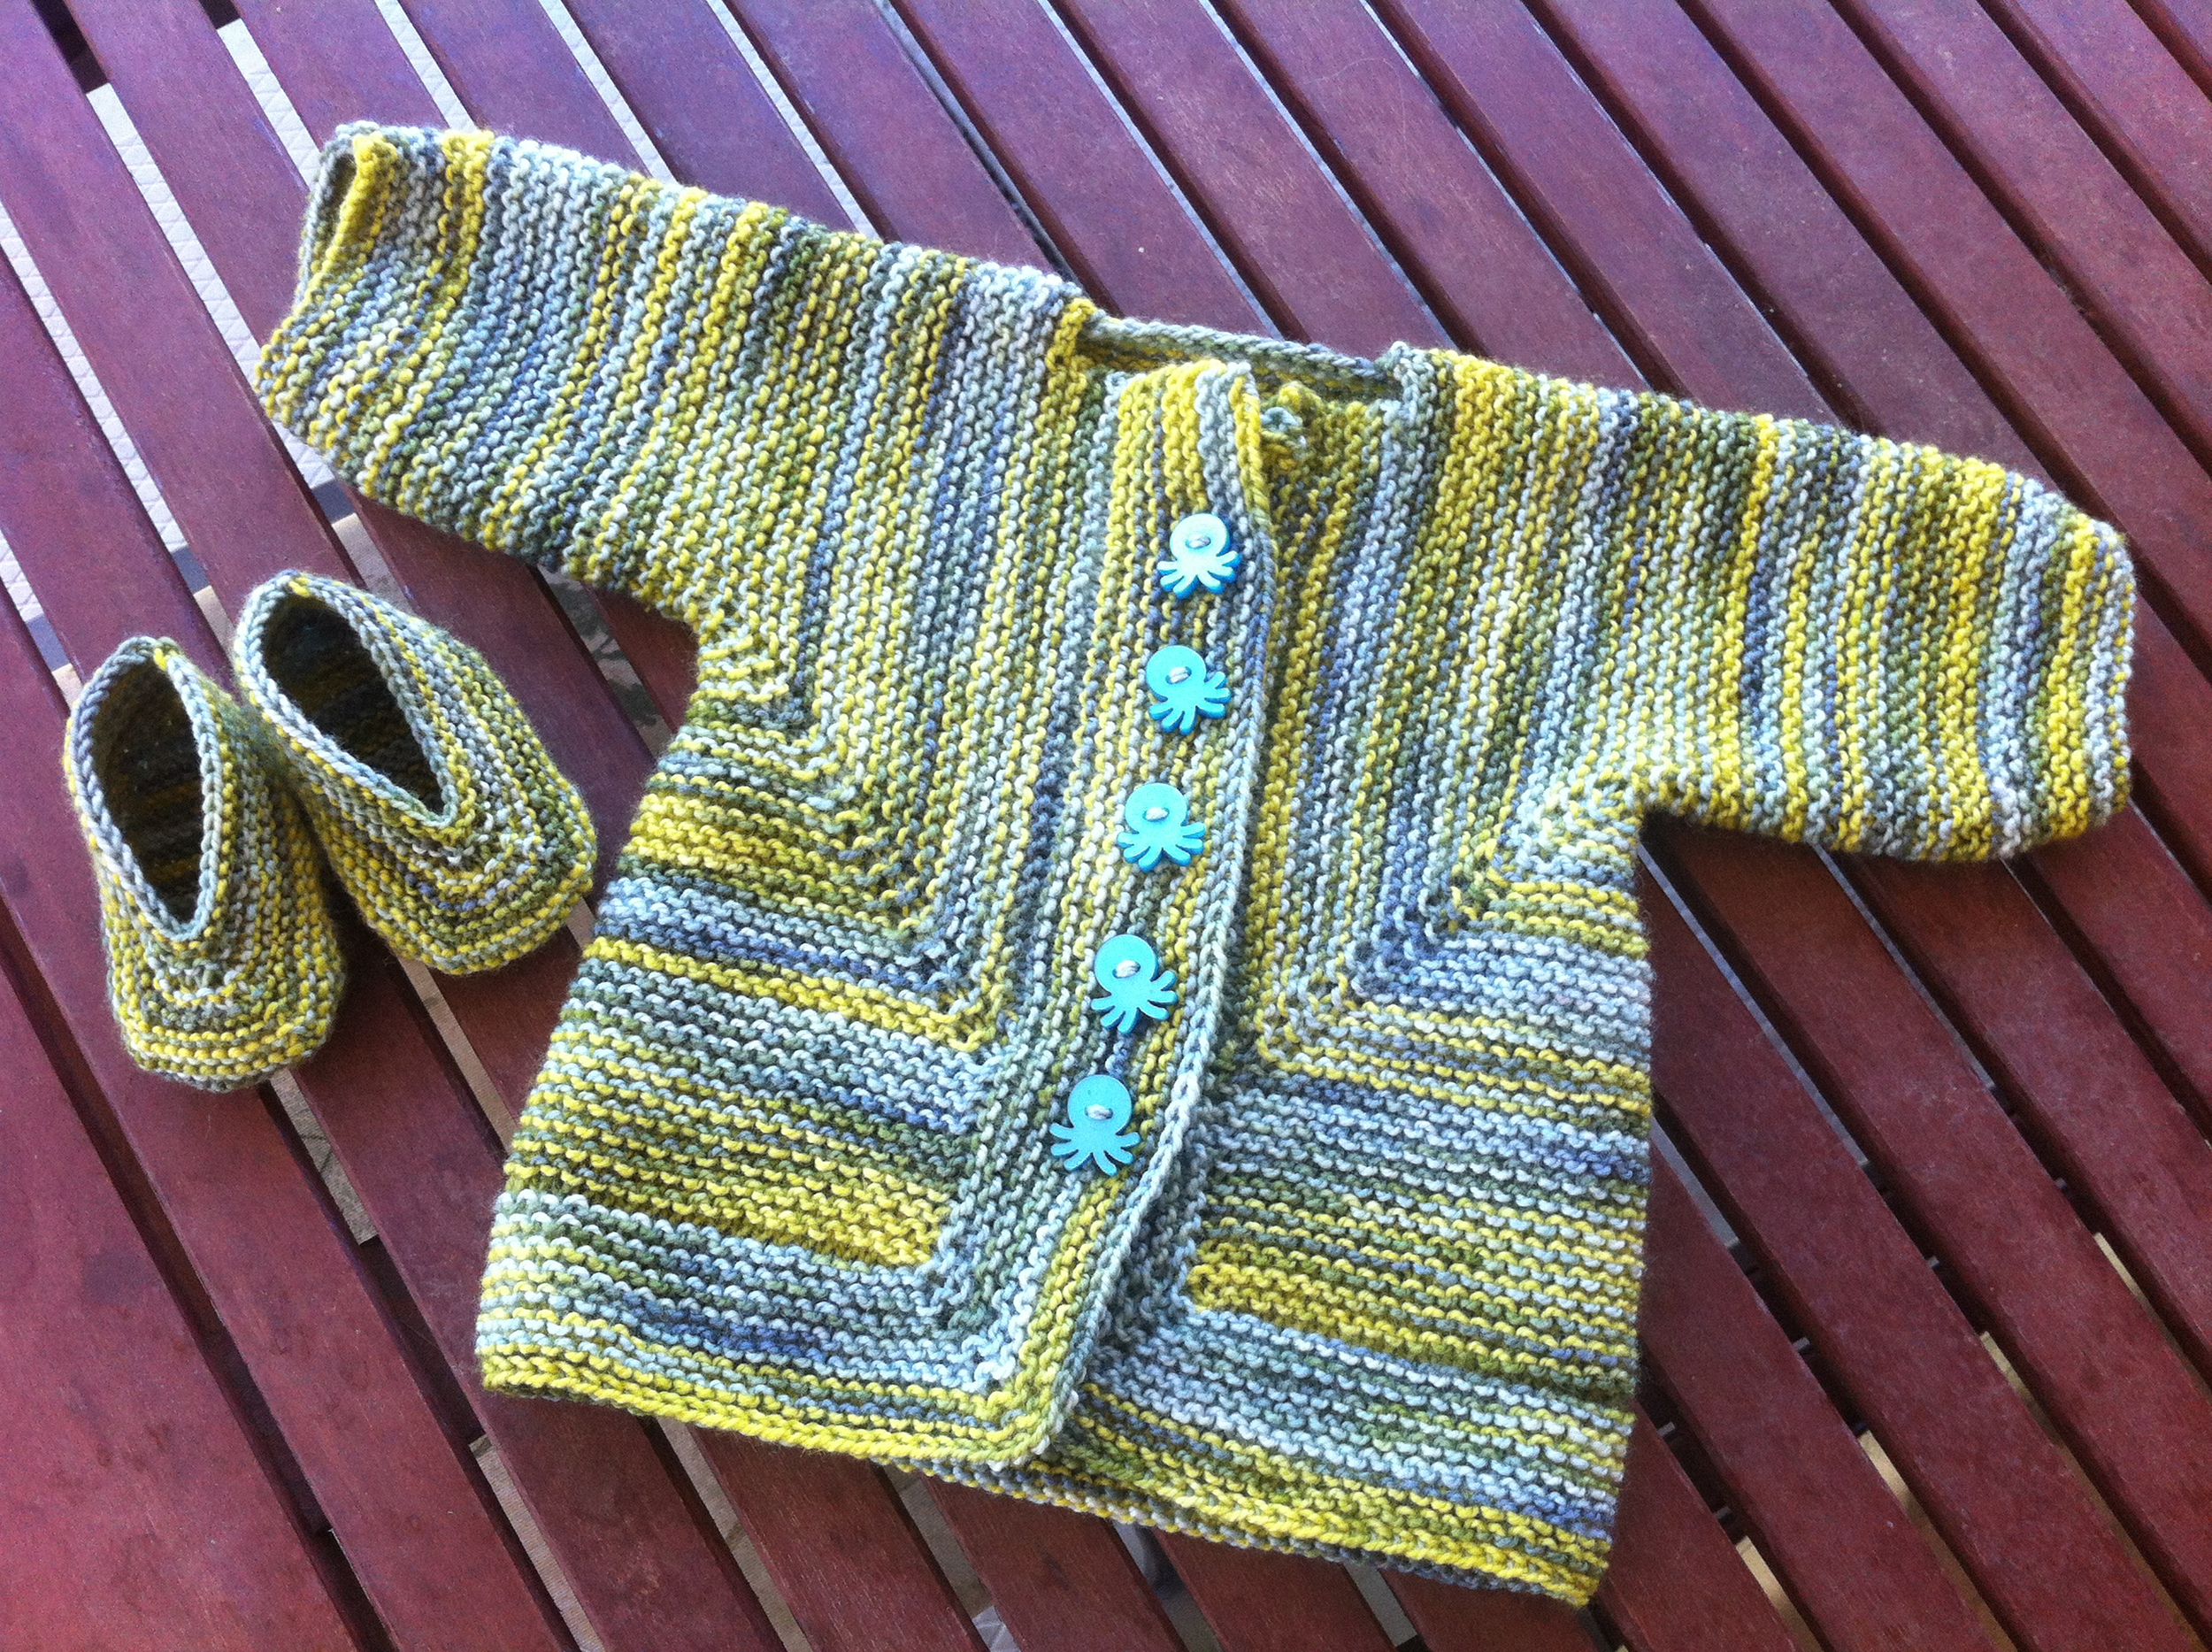 The Baby Surprise Jacket and booties I knit for Mr. Russell this past summer.